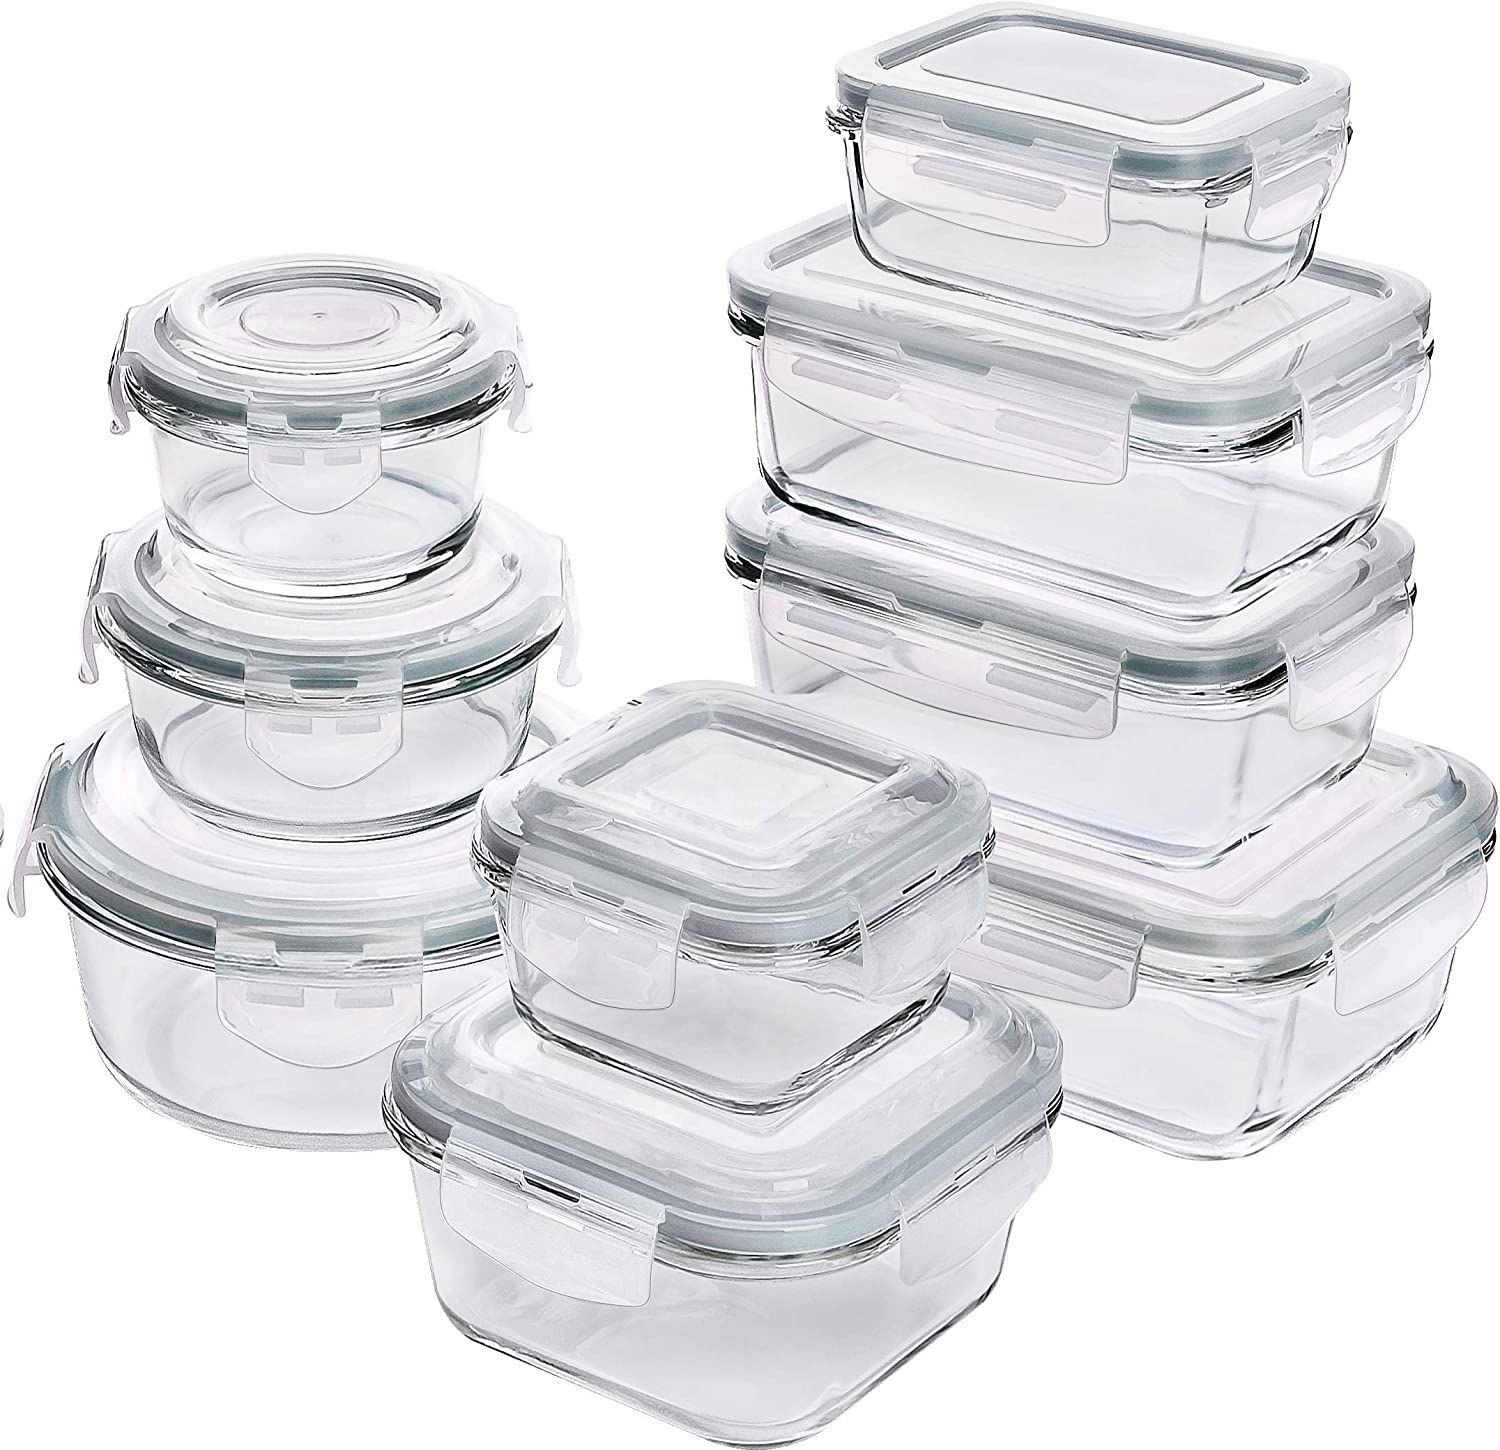 Utopia Kitchen Glass Food Storage Container Set - 18 Pieces (9 Containers and 9 Lids) - Transparent Lids - BPA Free (Grey)